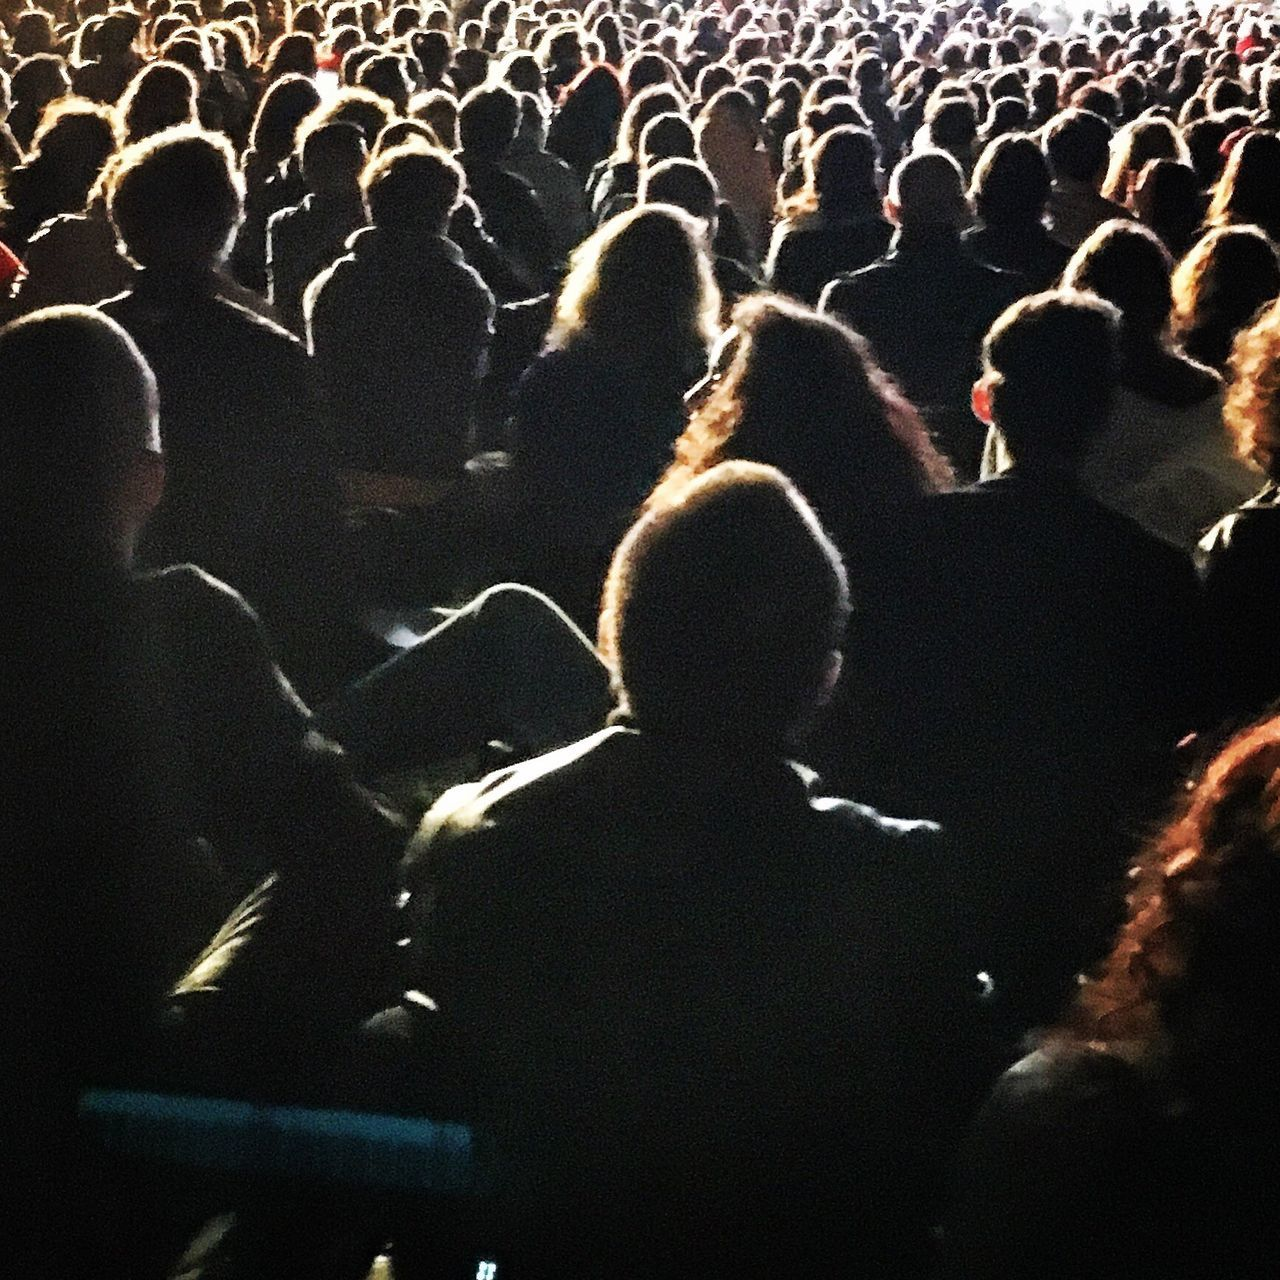 large group of people, audience, crowd, men, rear view, real people, arts culture and entertainment, togetherness, women, enjoyment, performance, standing, leisure activity, indoors, illuminated, popular music concert, day, people, adult